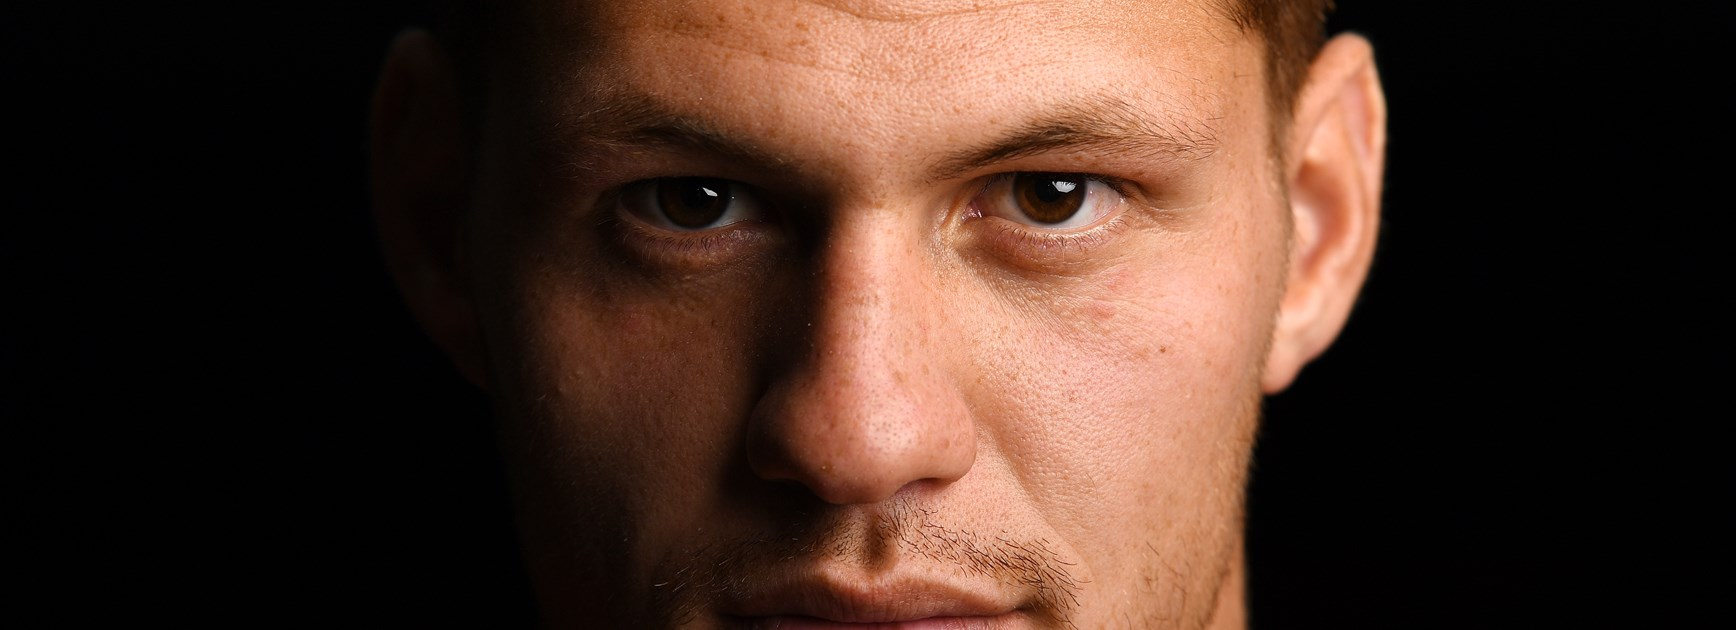 Ponga: An honest look at what must change